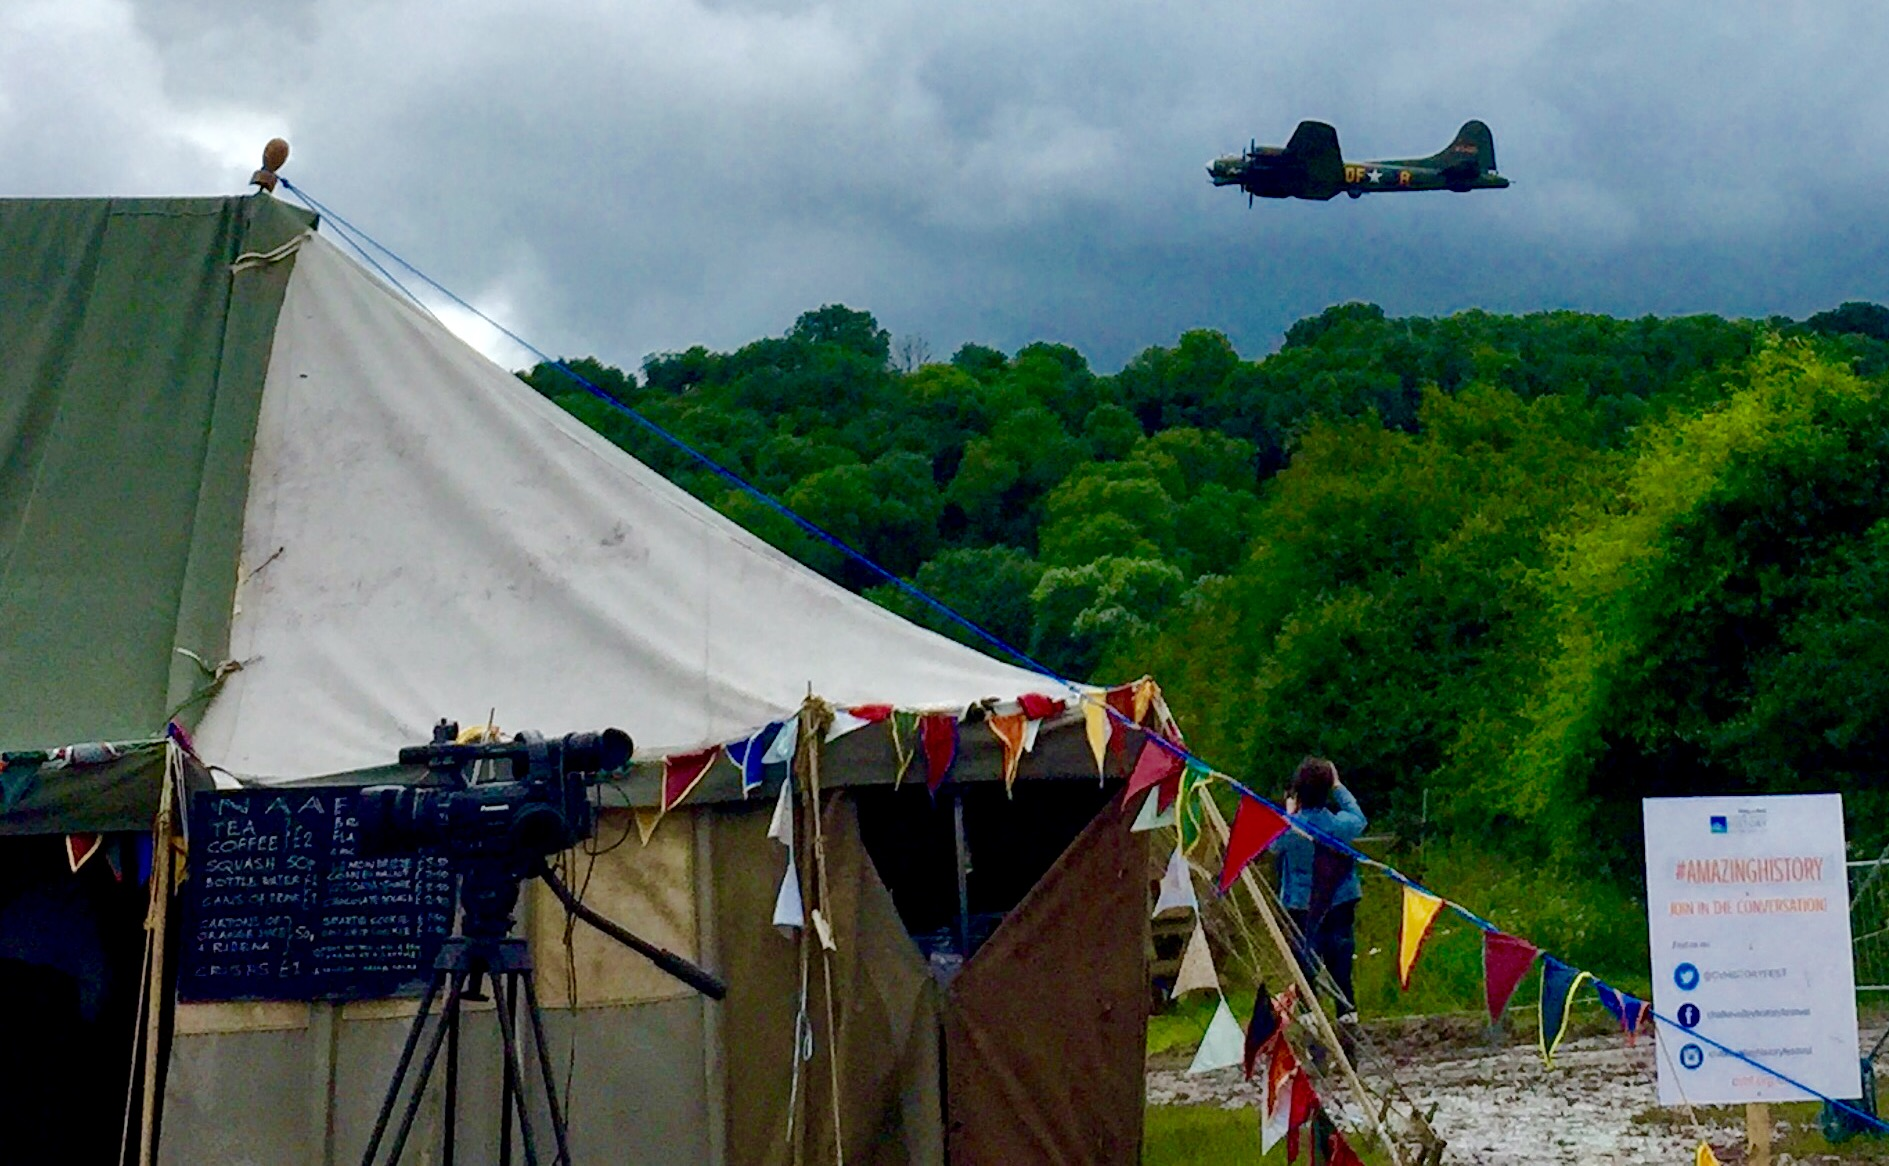 Low flying aircraft over the Chalke Valley